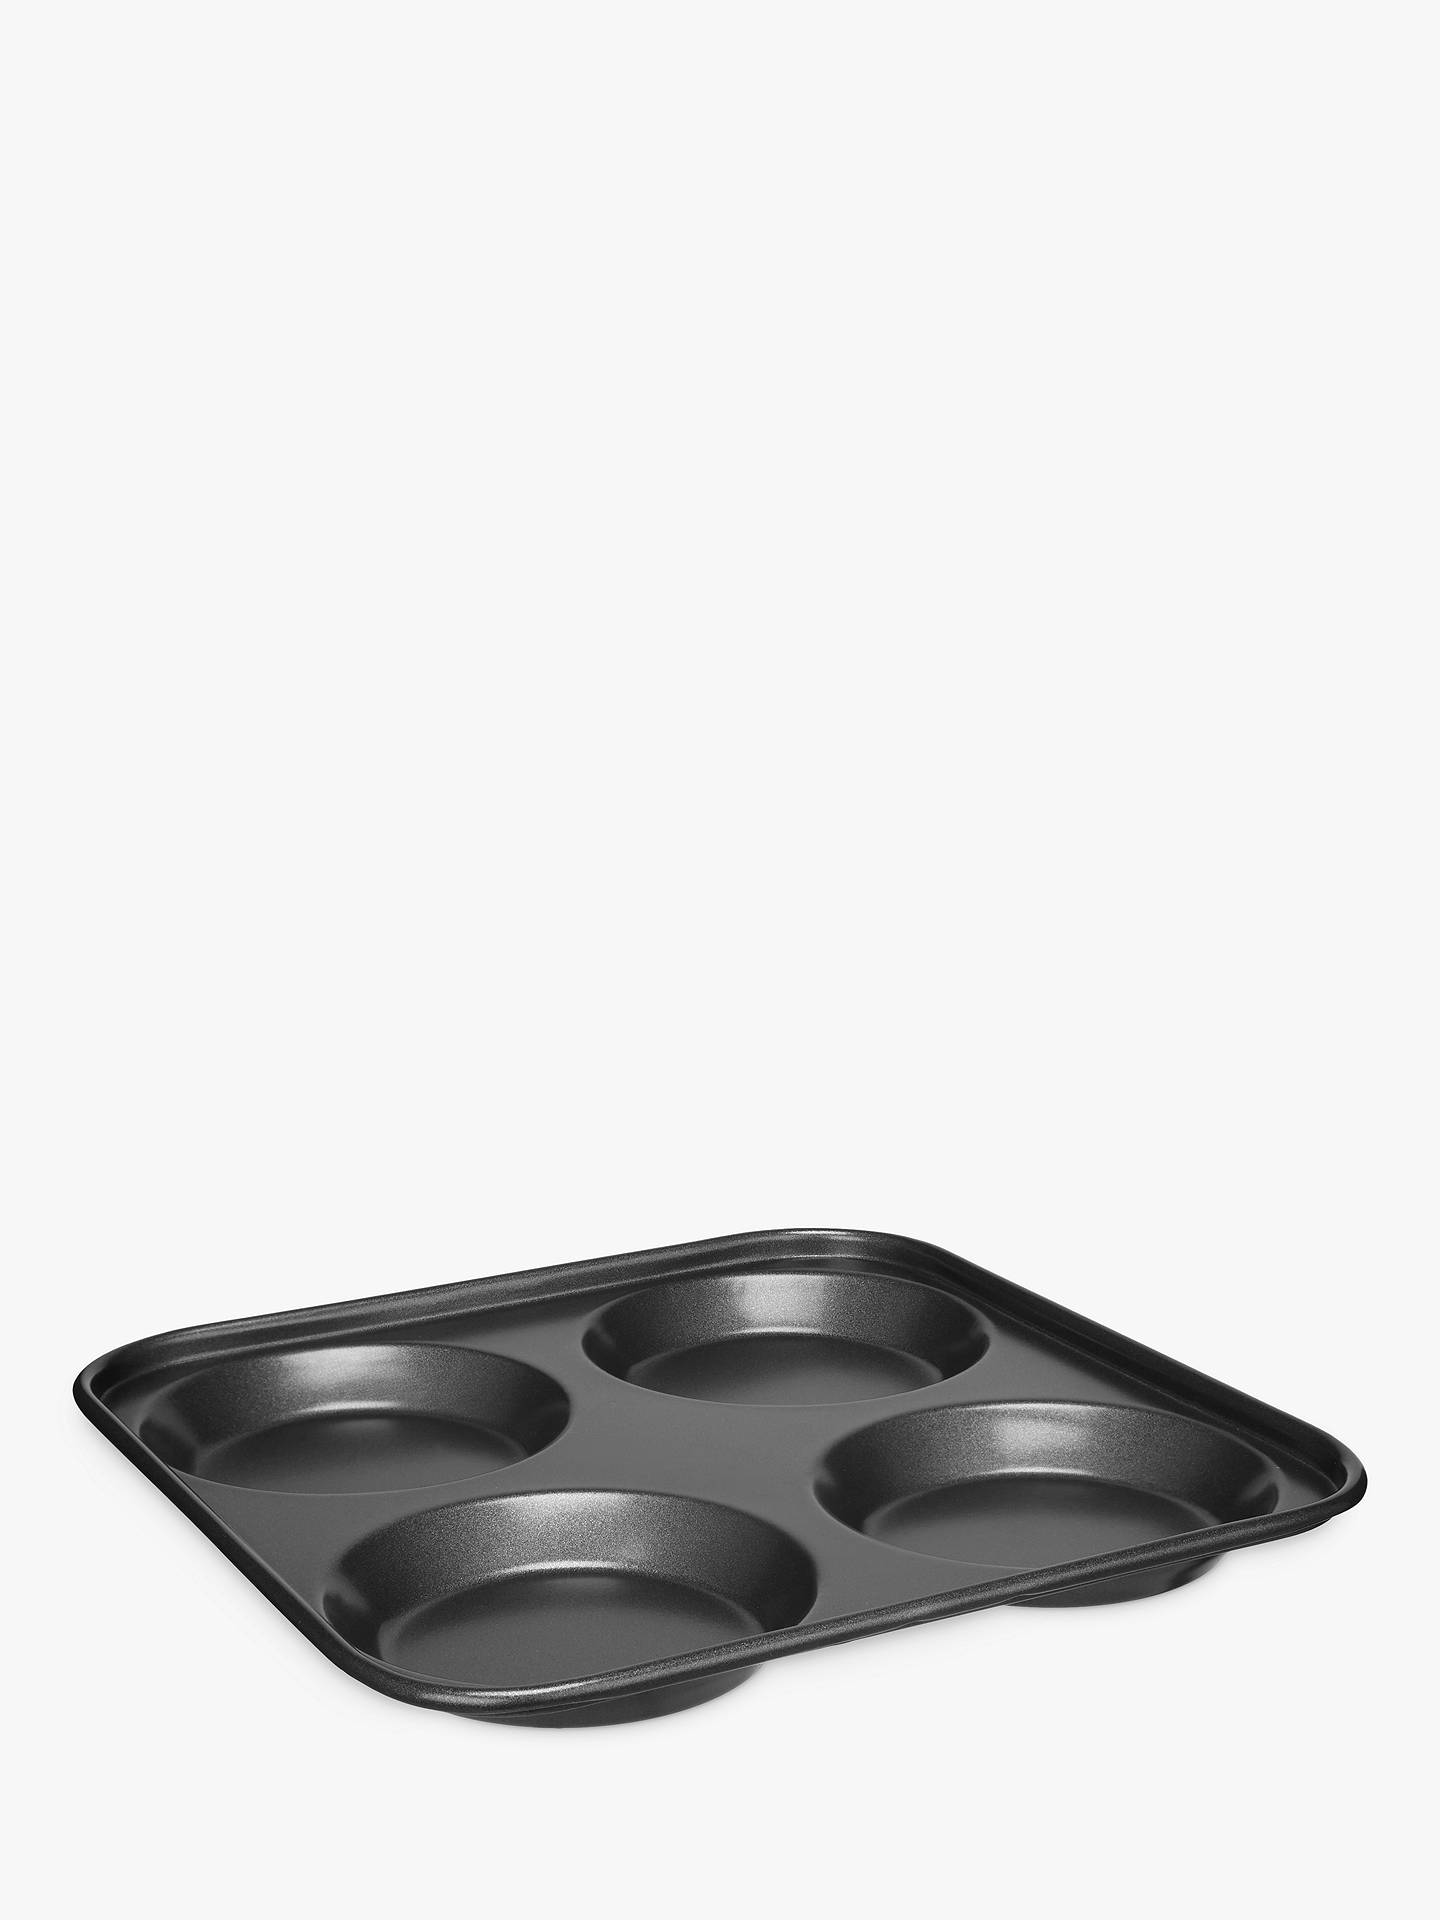 BuyJohn Lewis & Partners Yorkshire Pudding Tray, Grey Online at johnlewis.com